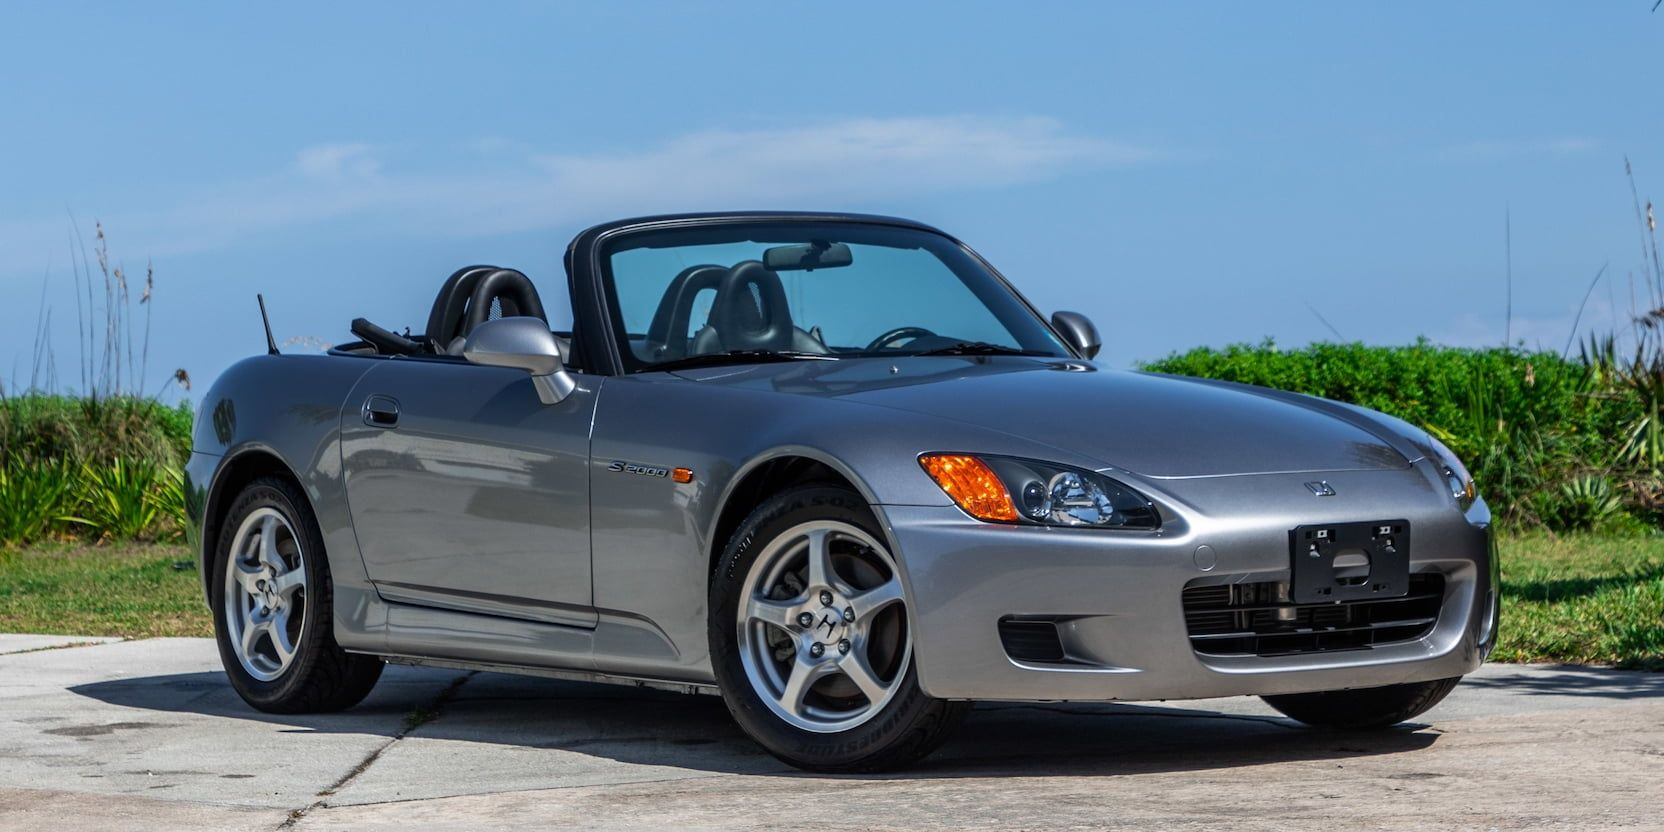 10 Best Manual Transmission Sports Cars You Can Buy For $30,000